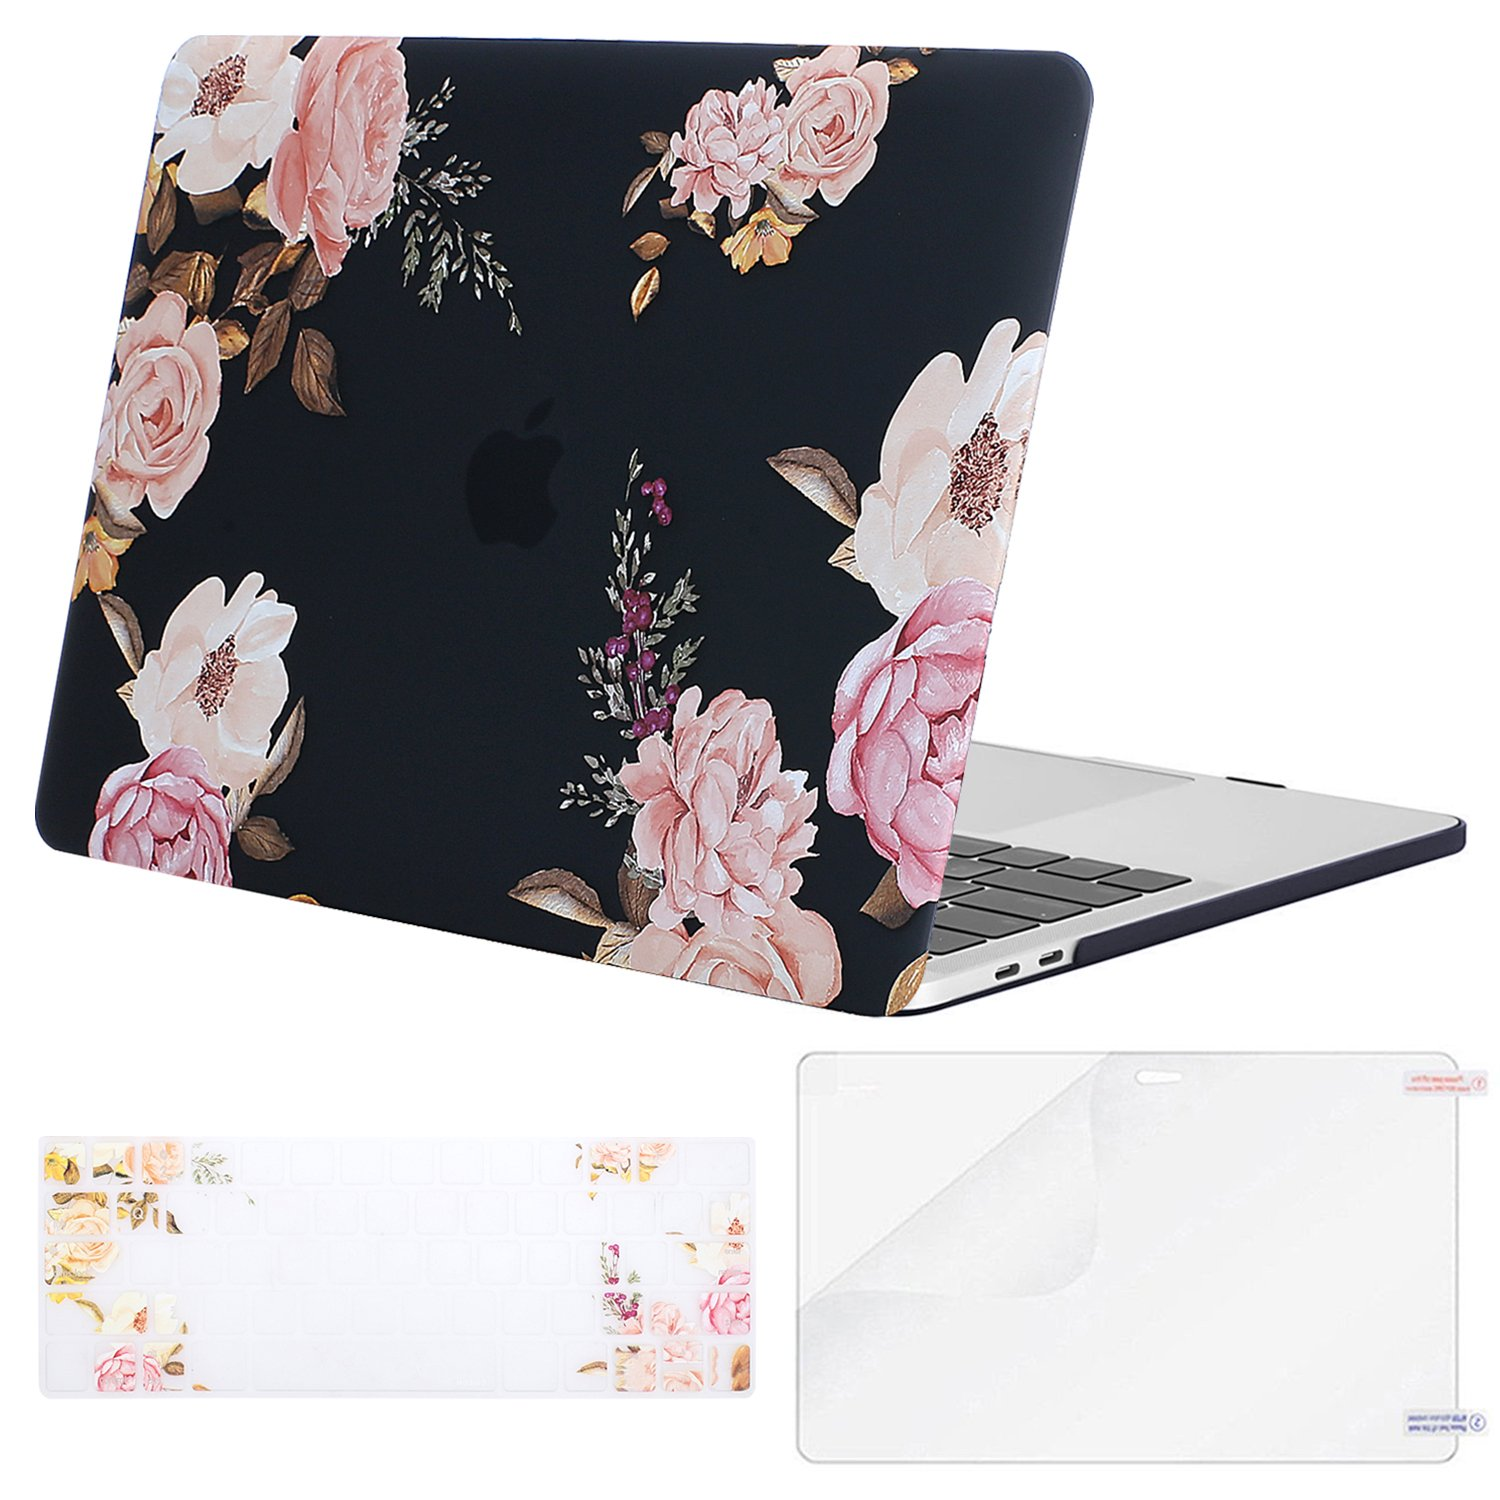 MOSISO MacBook Pro 13 Case 2018 2017 2016 Release A1989/A1706/A1708, Plastic Pattern Flower Hard Shell & Keyboard Cover & Screen Protector Compatible Newest Mac Pro 13 Inch, Peony on Black Base